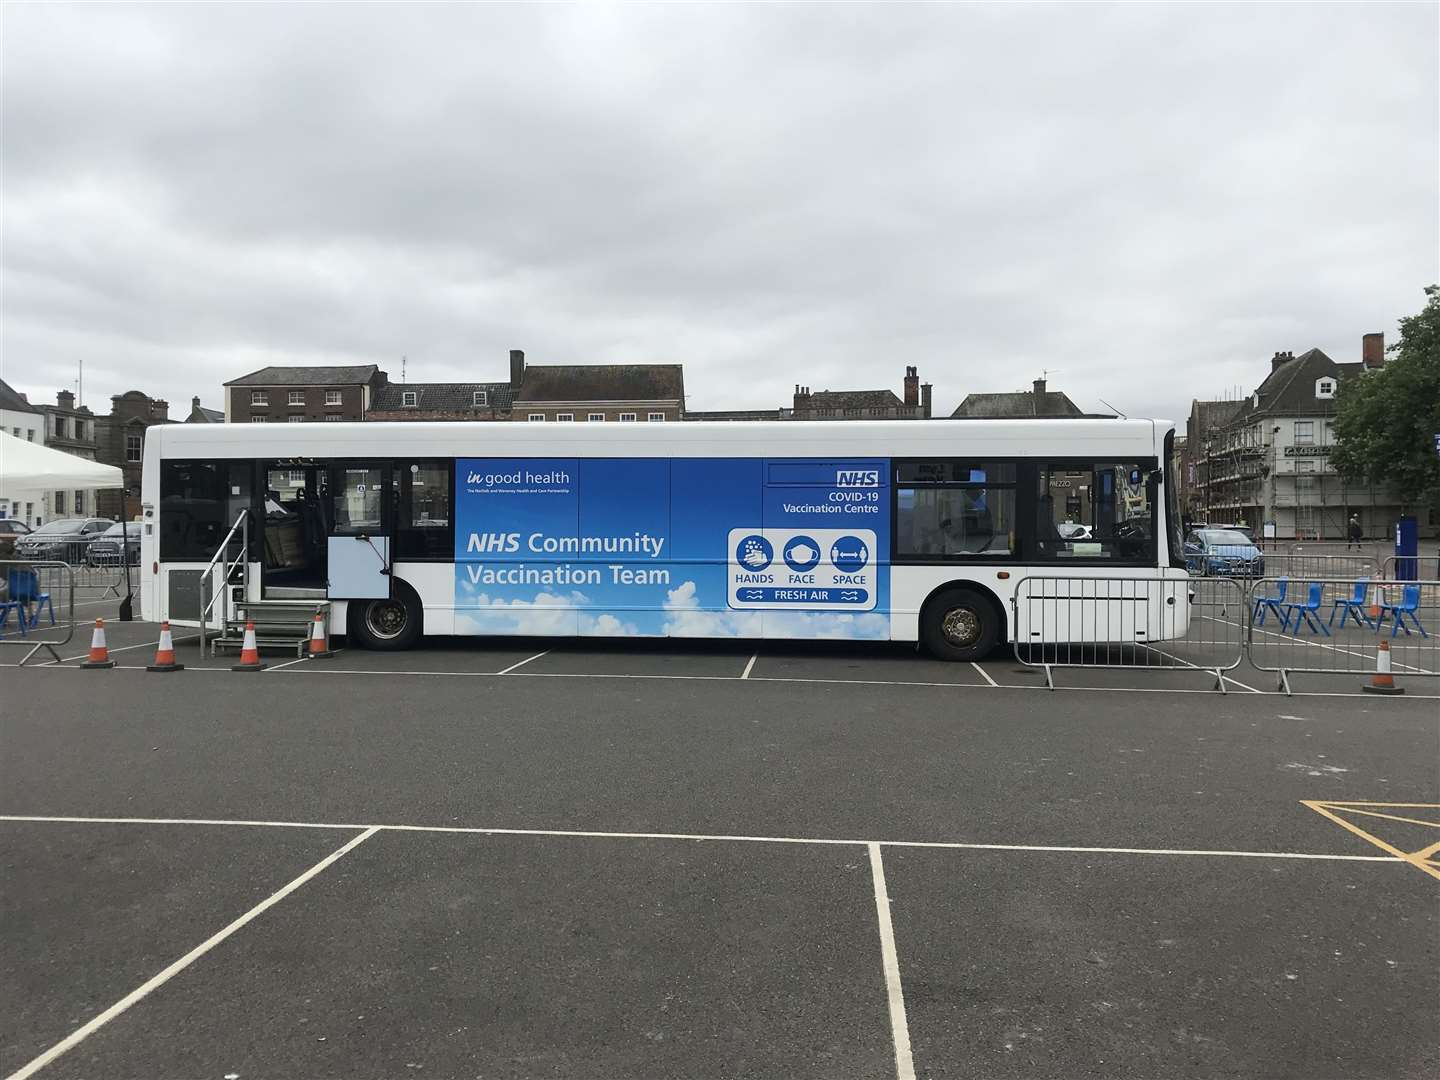 NHS Community Vaccination Team bus is in Tuesday Market Place in Lynn. (50493518)